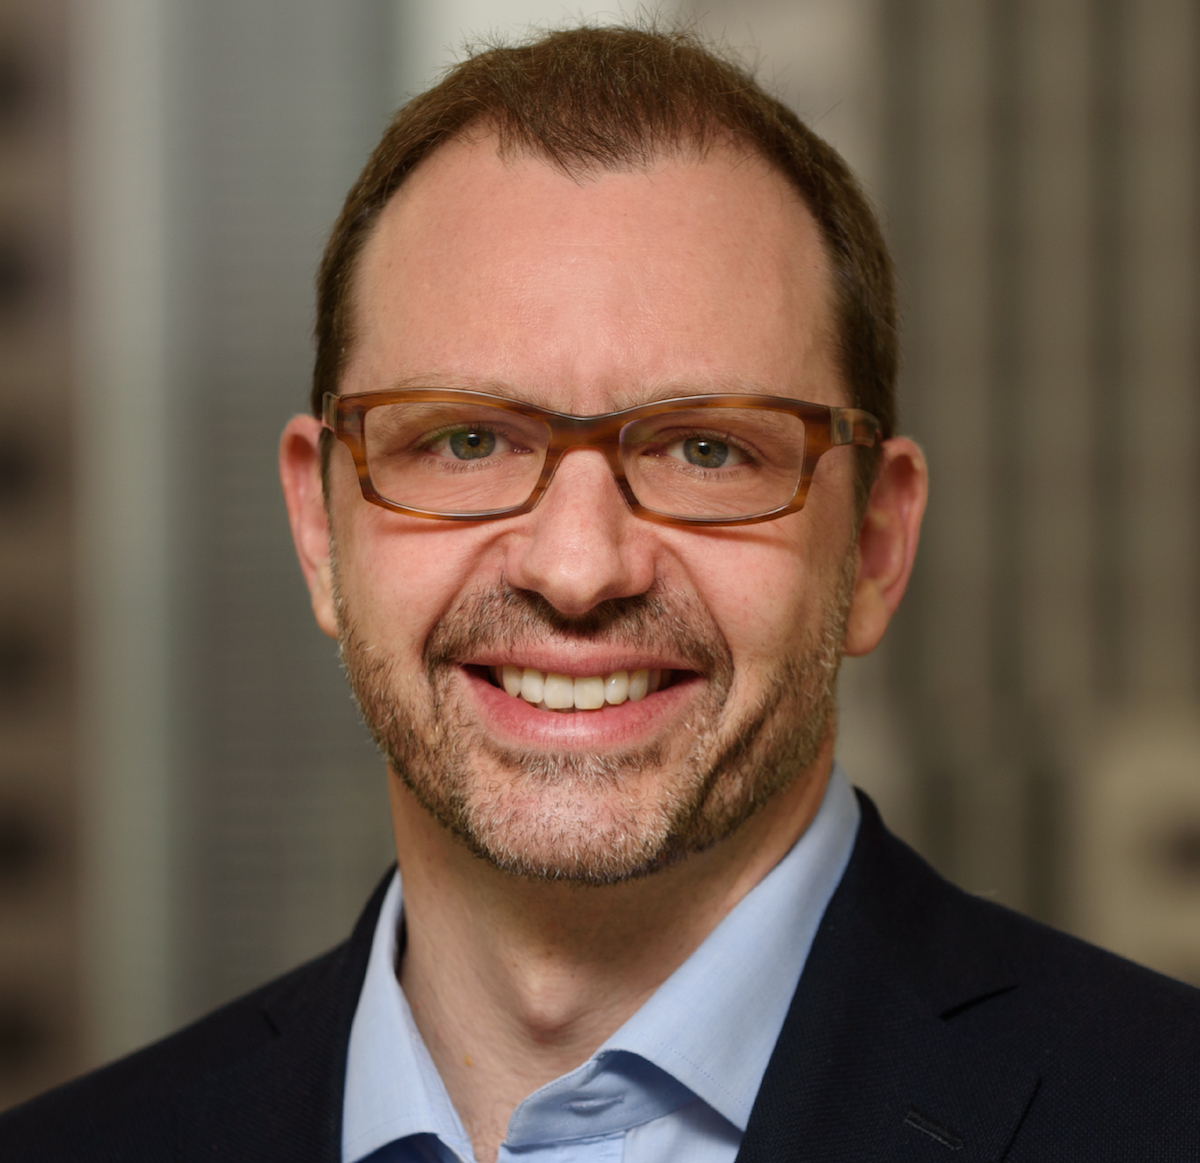 Reflections and Predictions on China and SoftBank in 2020 with Shai Oster